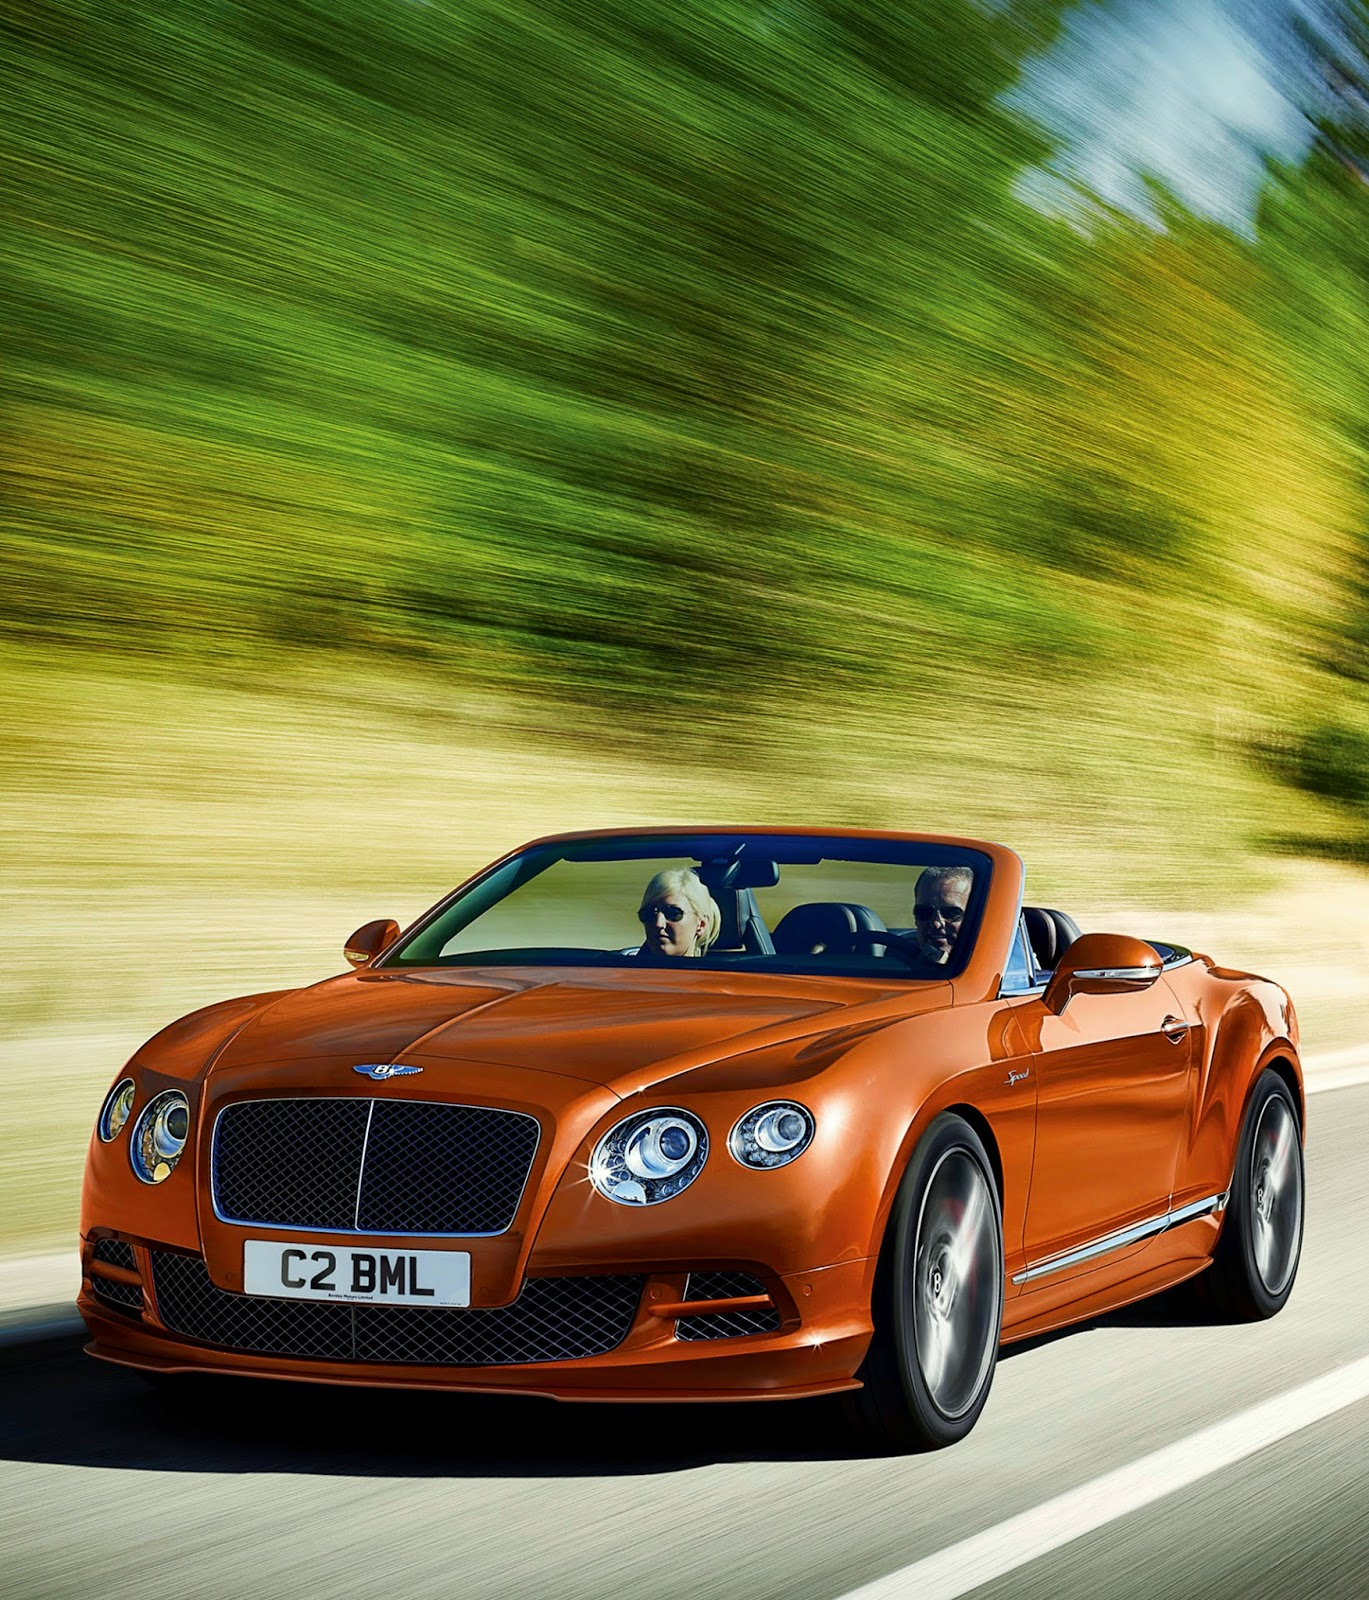 Bentley Convertible Price: Uautoknow.net: Quick Look: Bentley Continental GT Speed